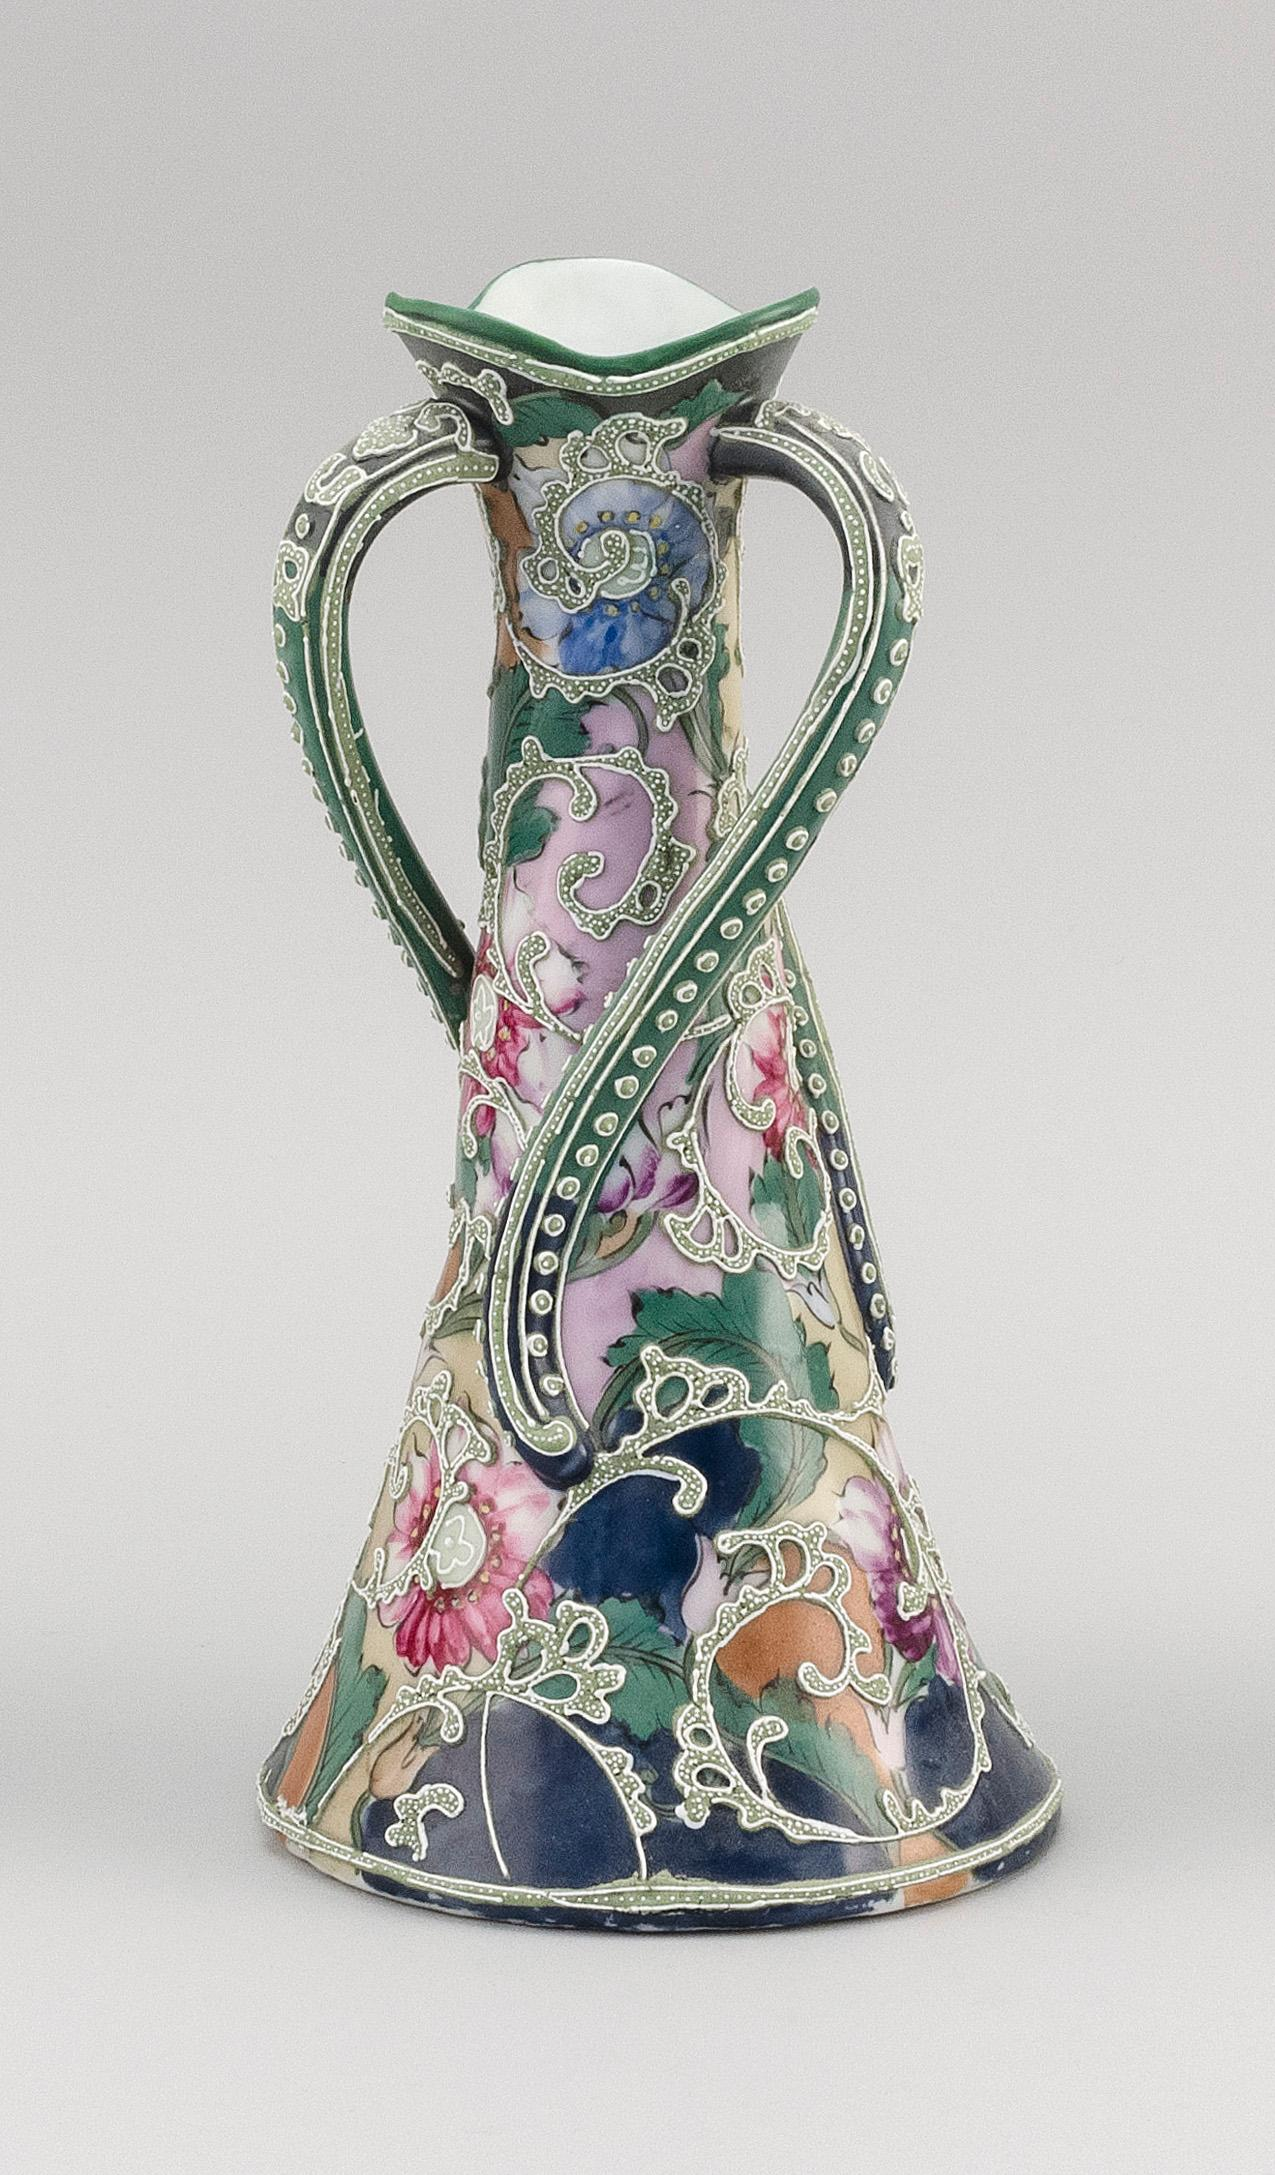 """MORIAGE NIPPON PORCELAIN VASE Conical, with three twisting handles and an elaborate floral design. Height 10.5""""."""